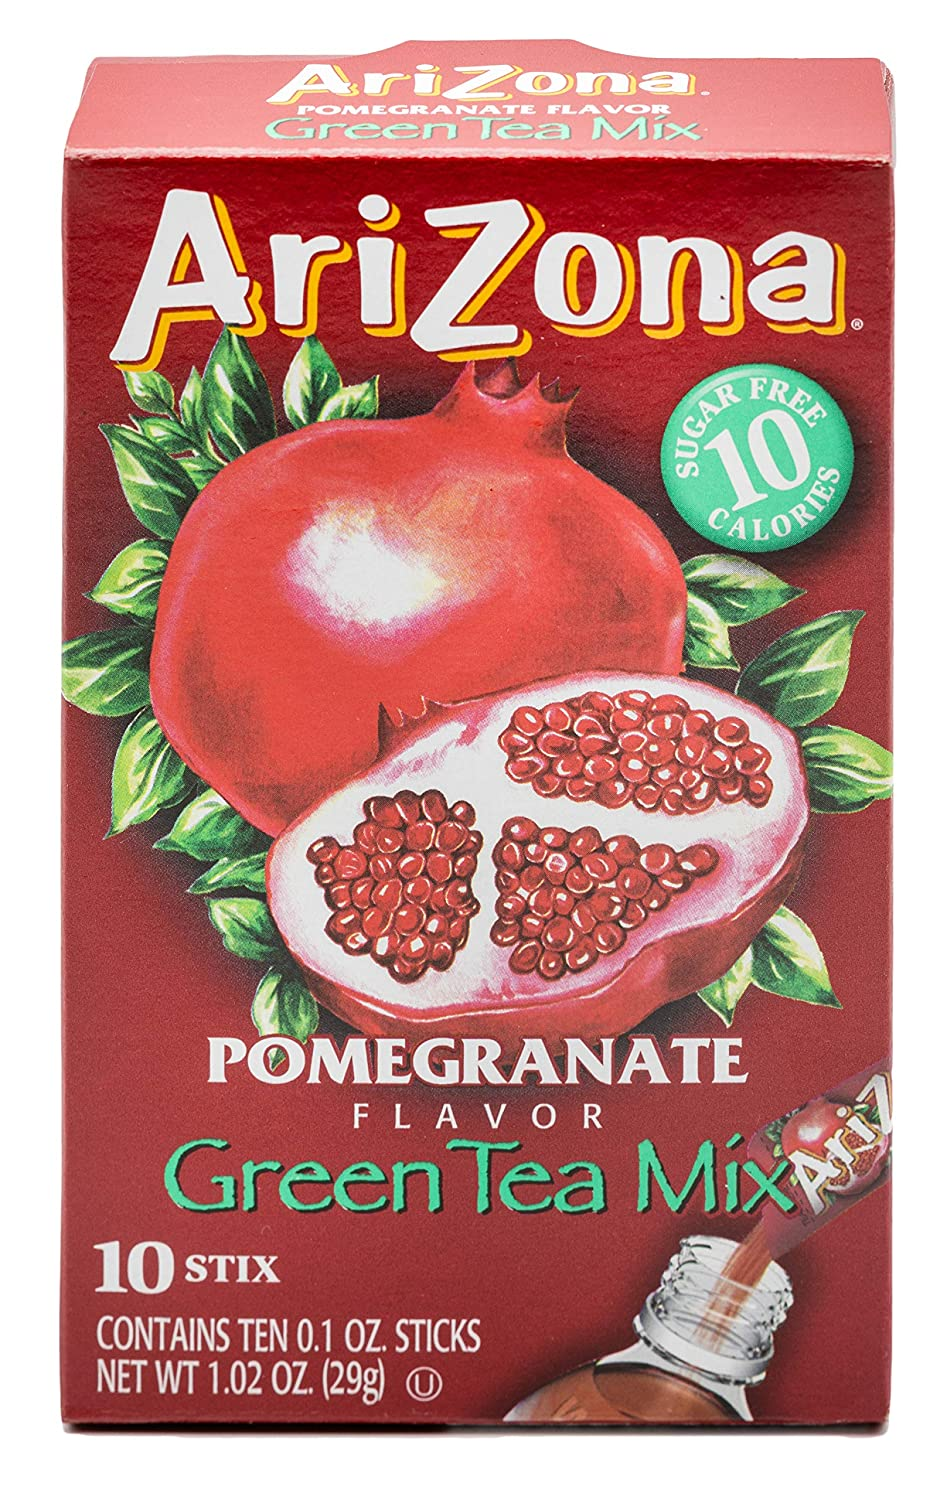 AriZona Pomegranate Green Tea Iced Tea Stix Sugar Free, Low Calorie Single Serving Drink Powder Packets, Just Add Water for a Deliciously Refreshing Iced Tea Beverage, 10 Count per box, Pack of 6